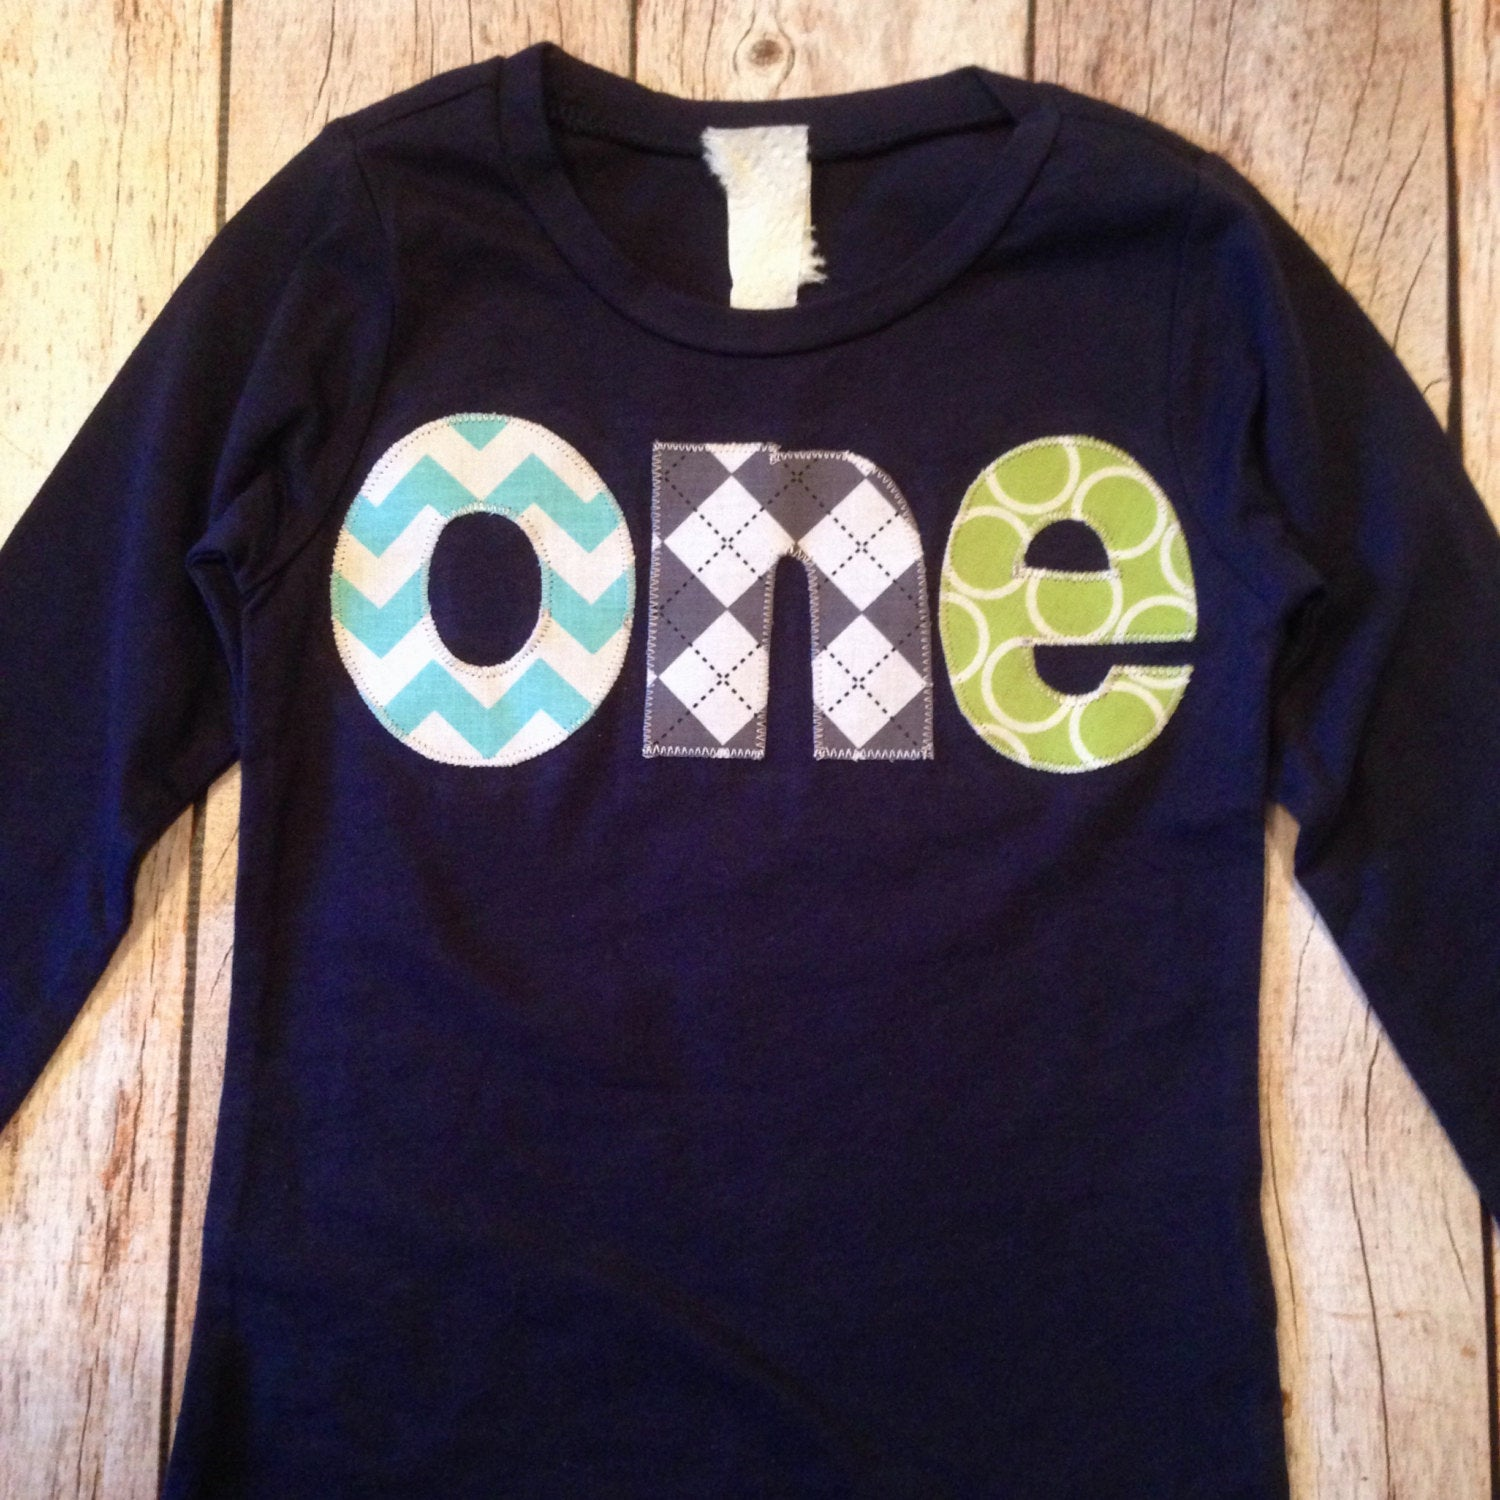 Navy green turquoise  Birthday Shirt boy aqua blue grey lime green argyle chevron Boys first outfit Party onderland one 1st 1 year old boy